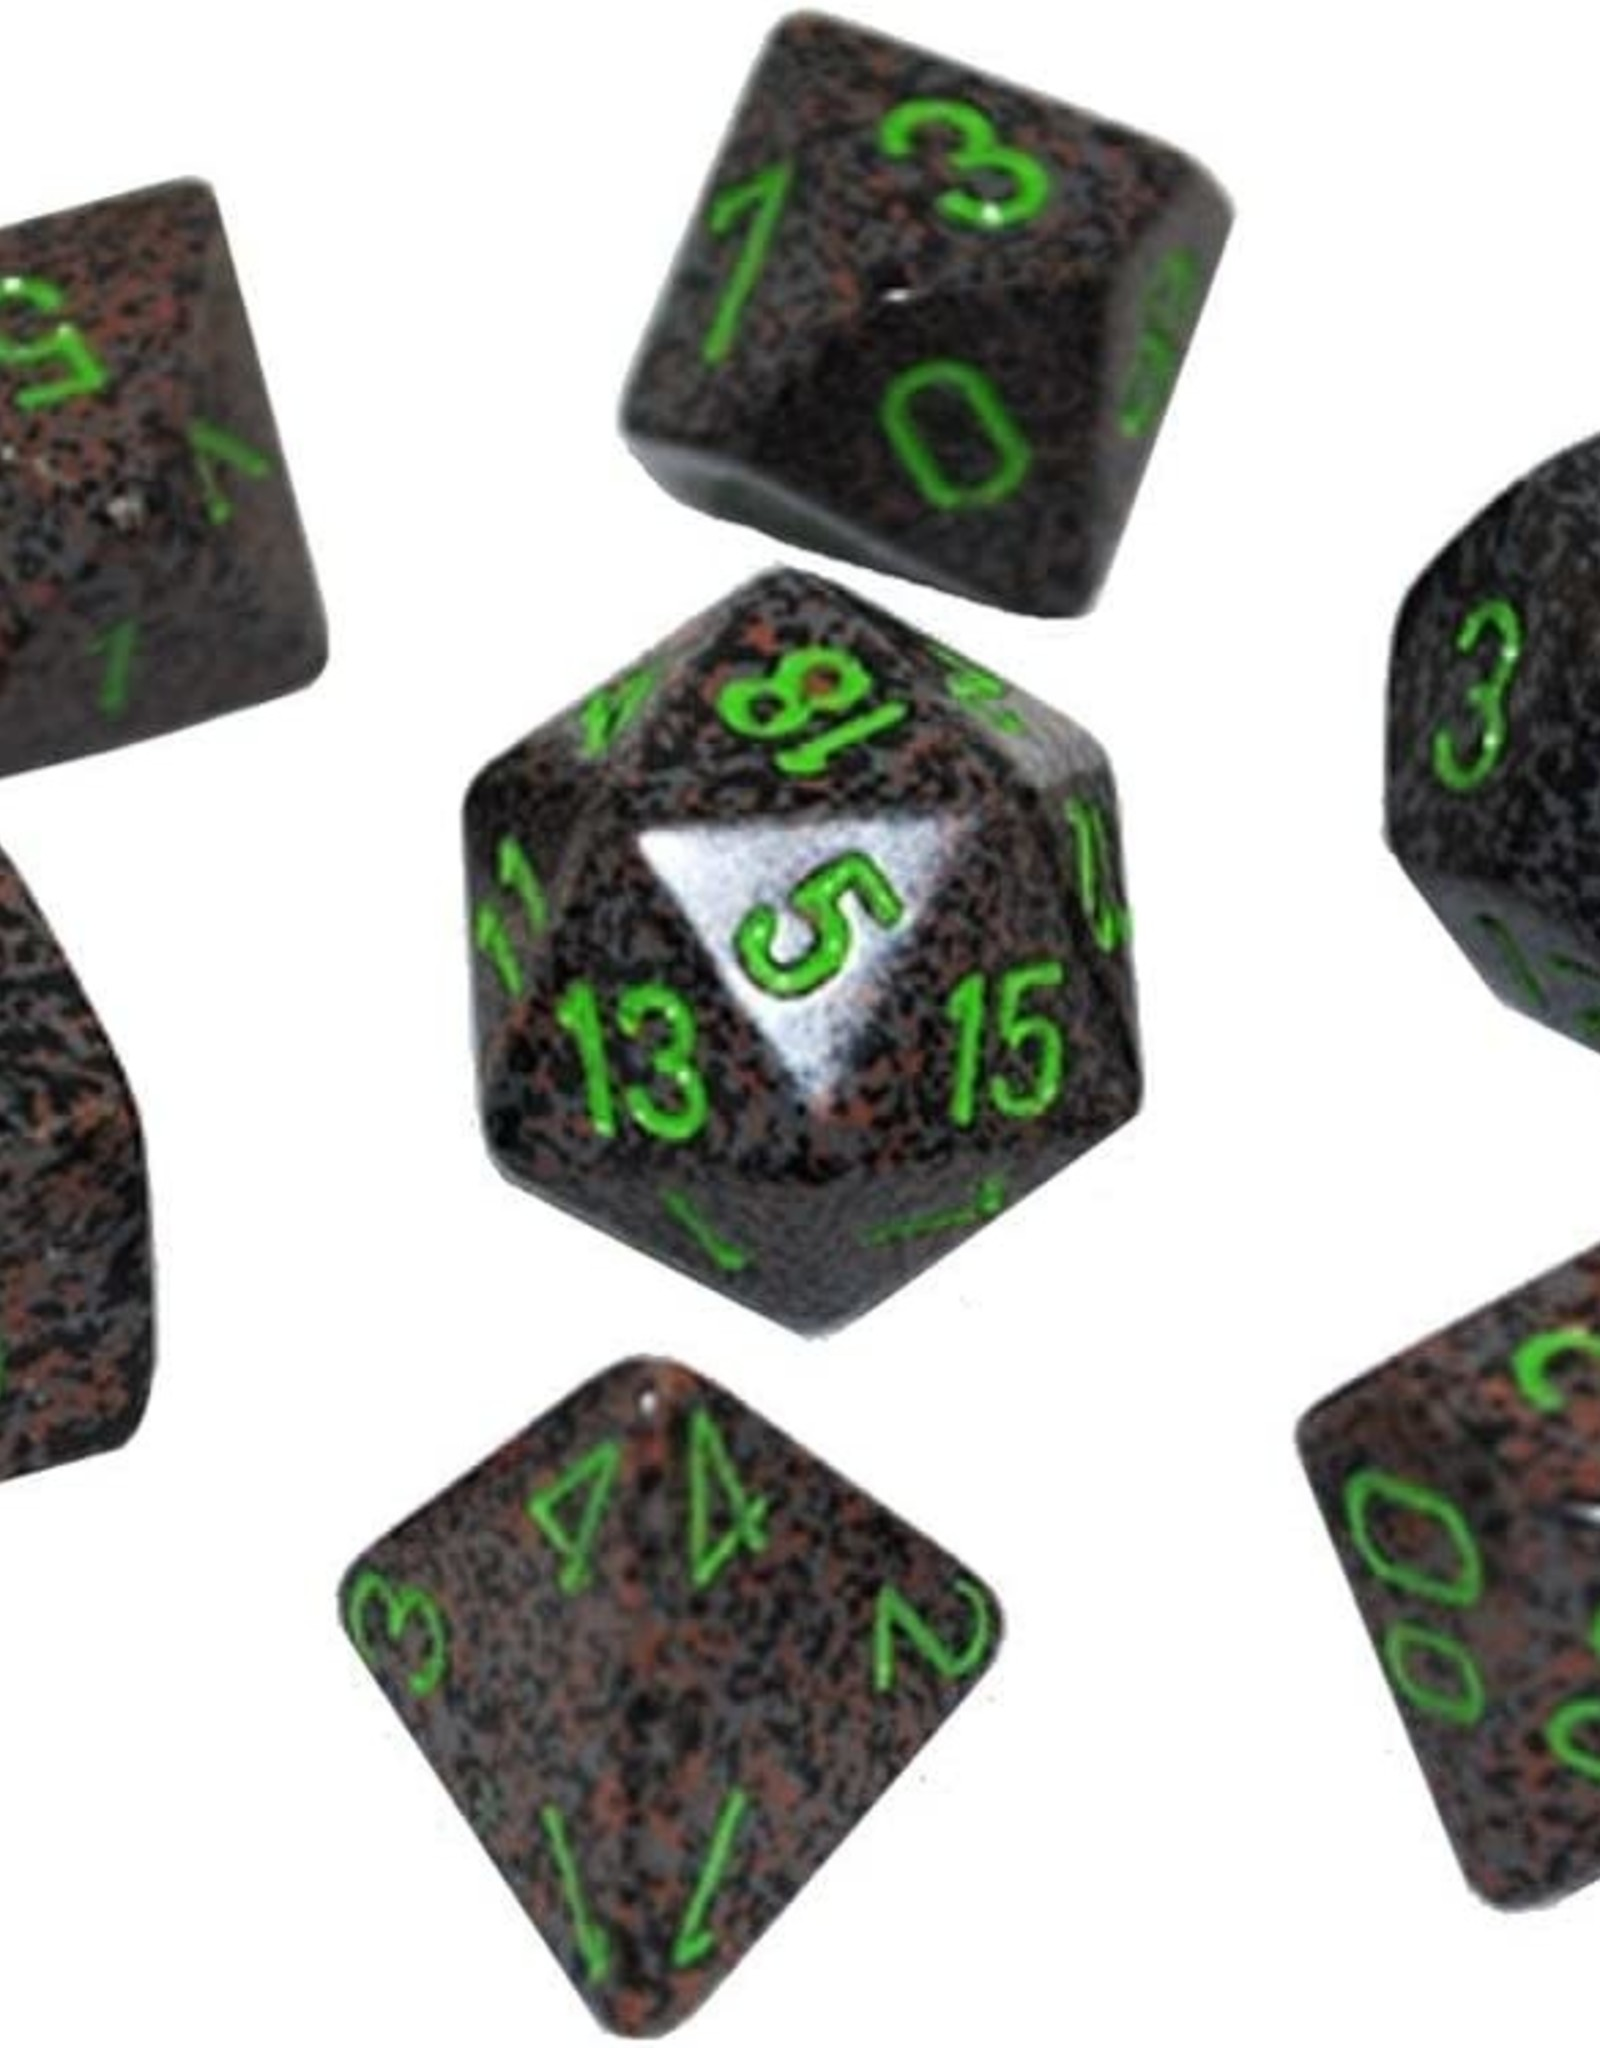 Chessex Chessex: Speckled Earth Black w/ Green - Polyhedral Dice Set (7) - CHX25310